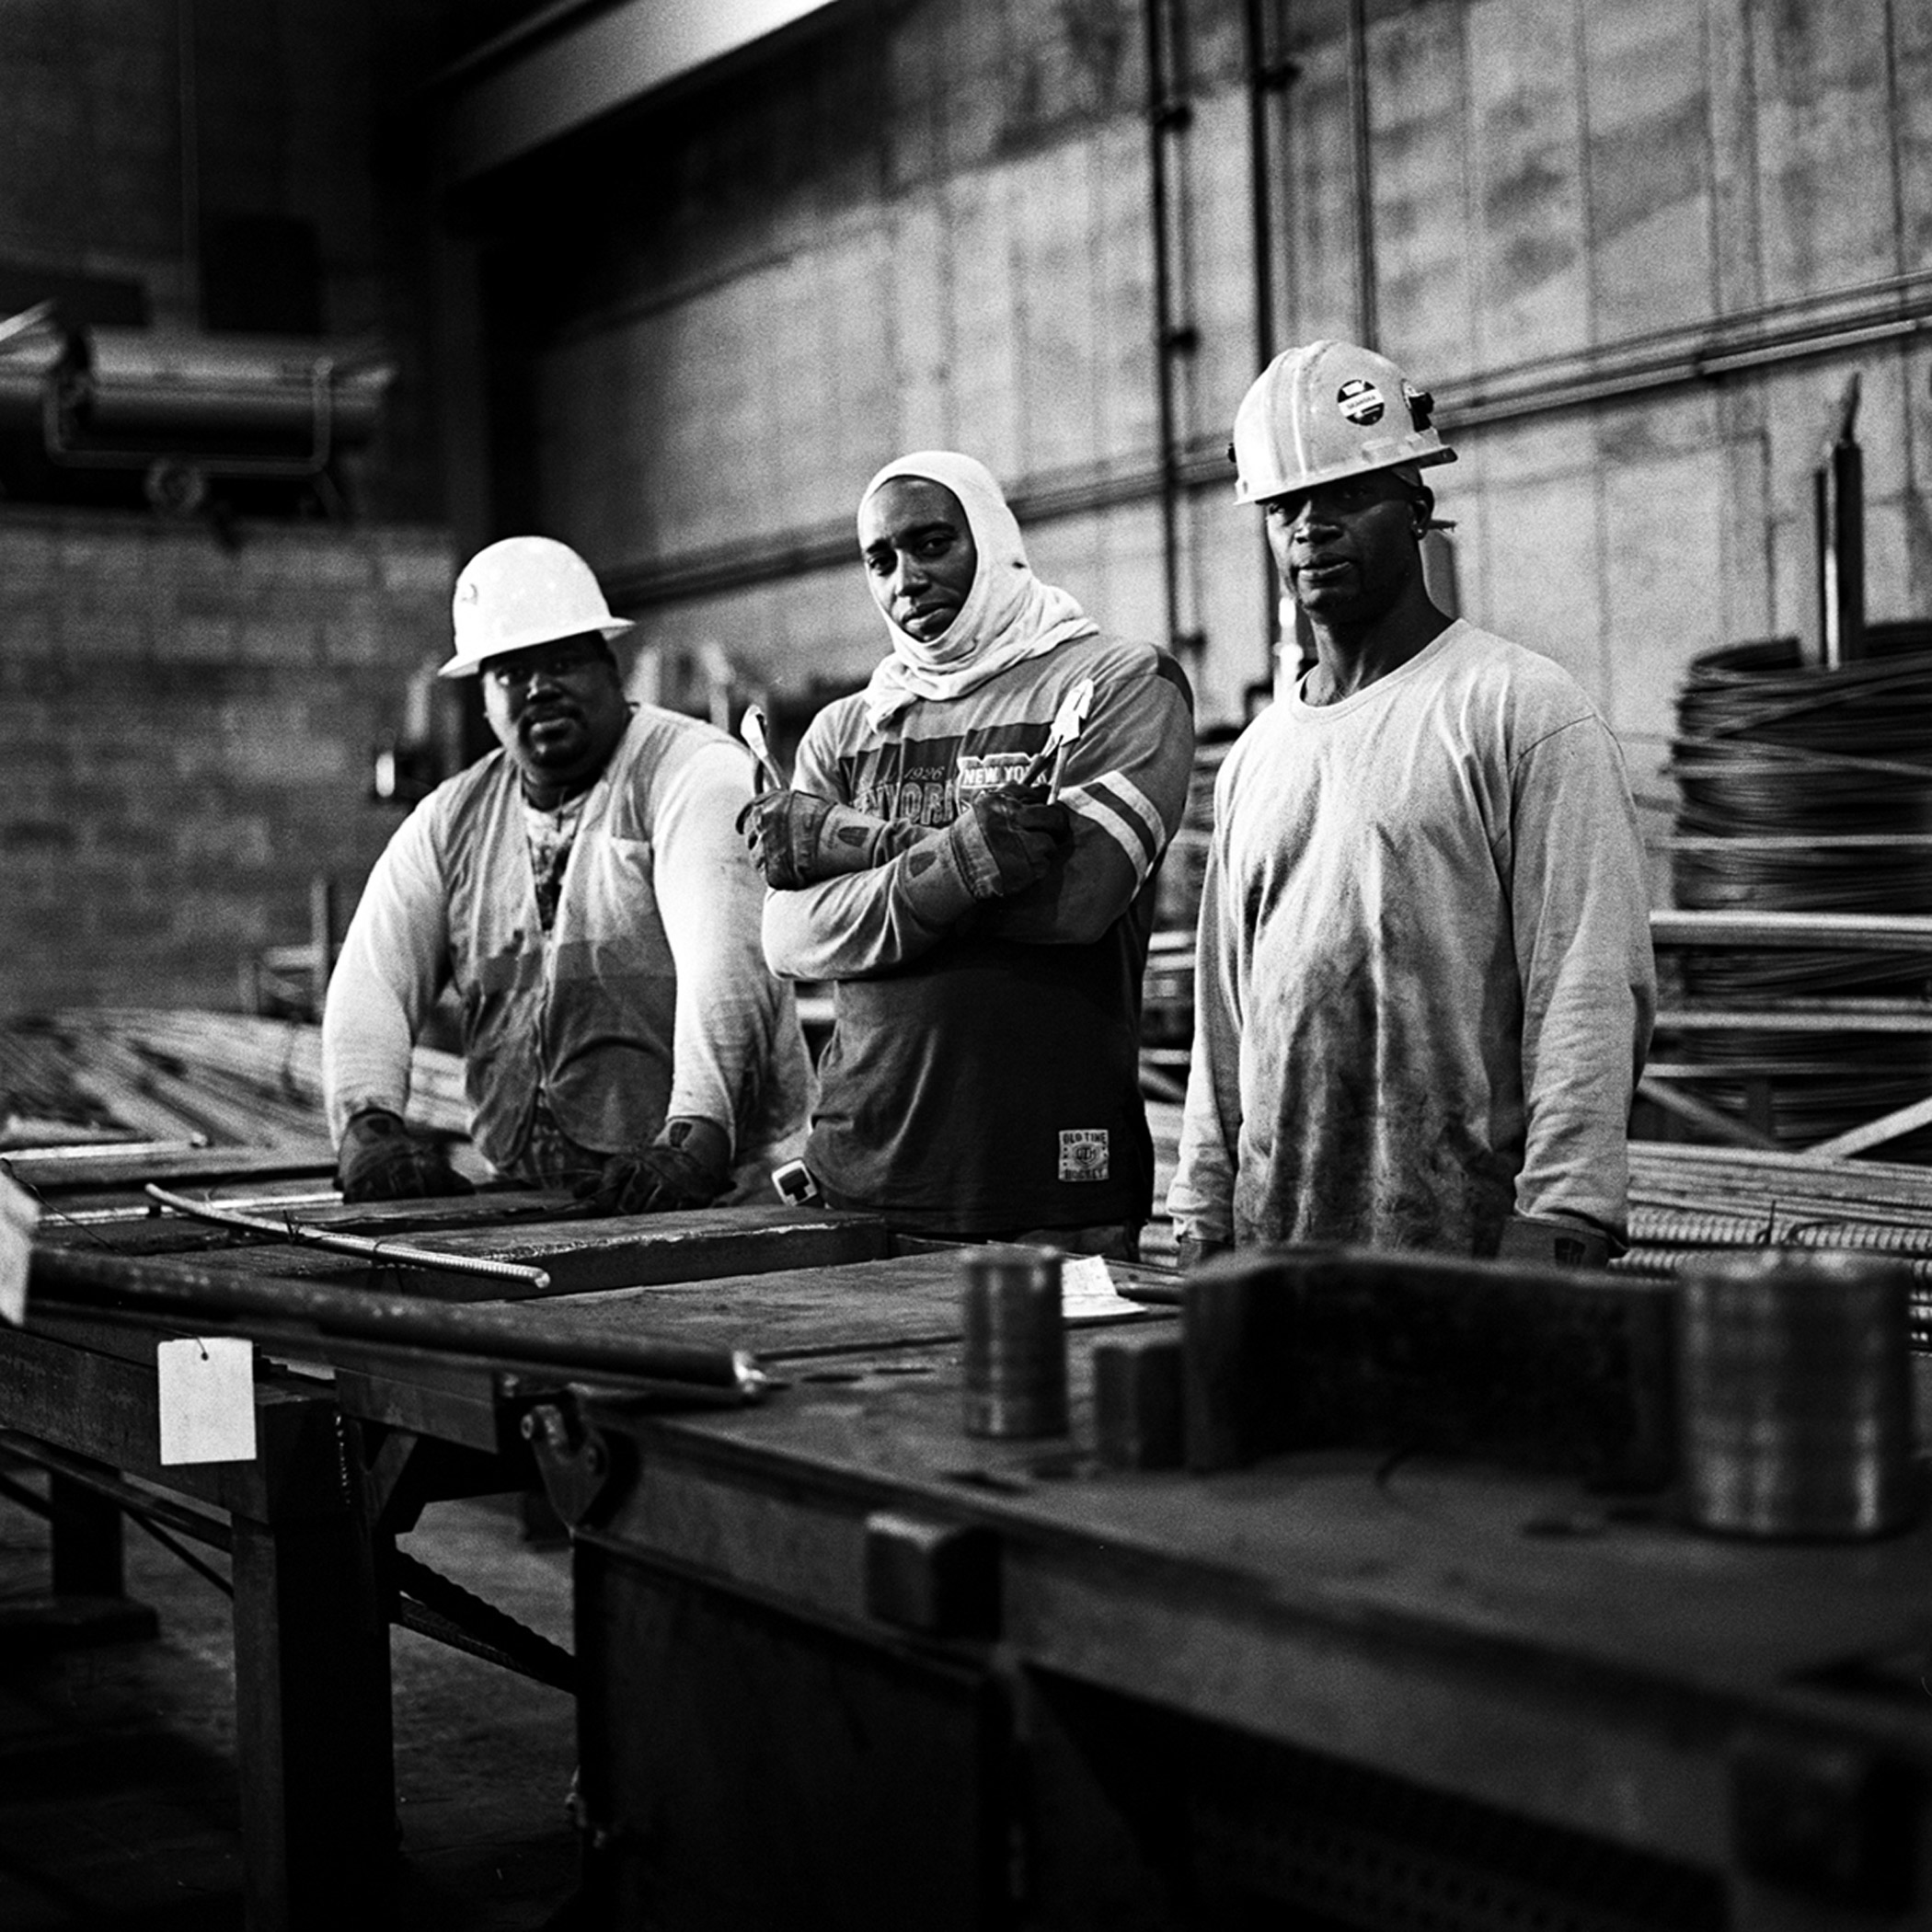 Pinnacle Industries union workers wait for strands of rebar to bend into the appropriate shapes needed for their construction project in Williamsburg, Brooklyn, N.Y., September 2015.